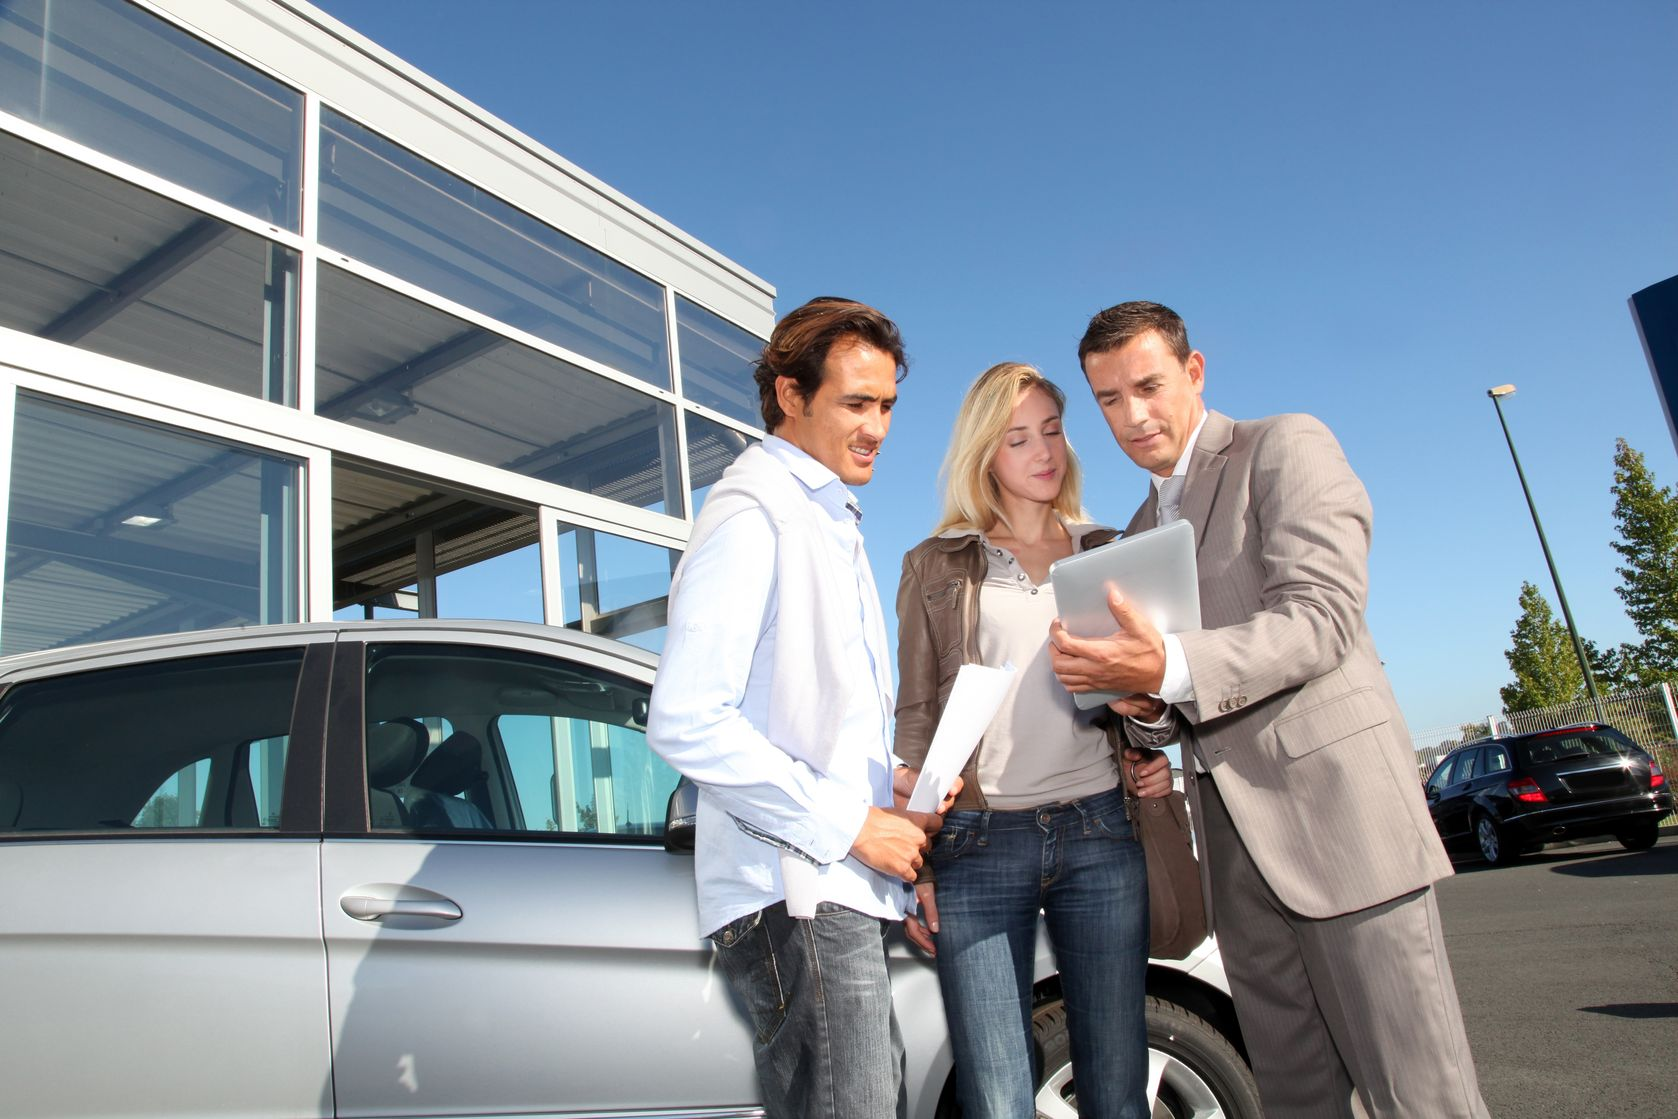 Yuba City Auto Dealers Insurance